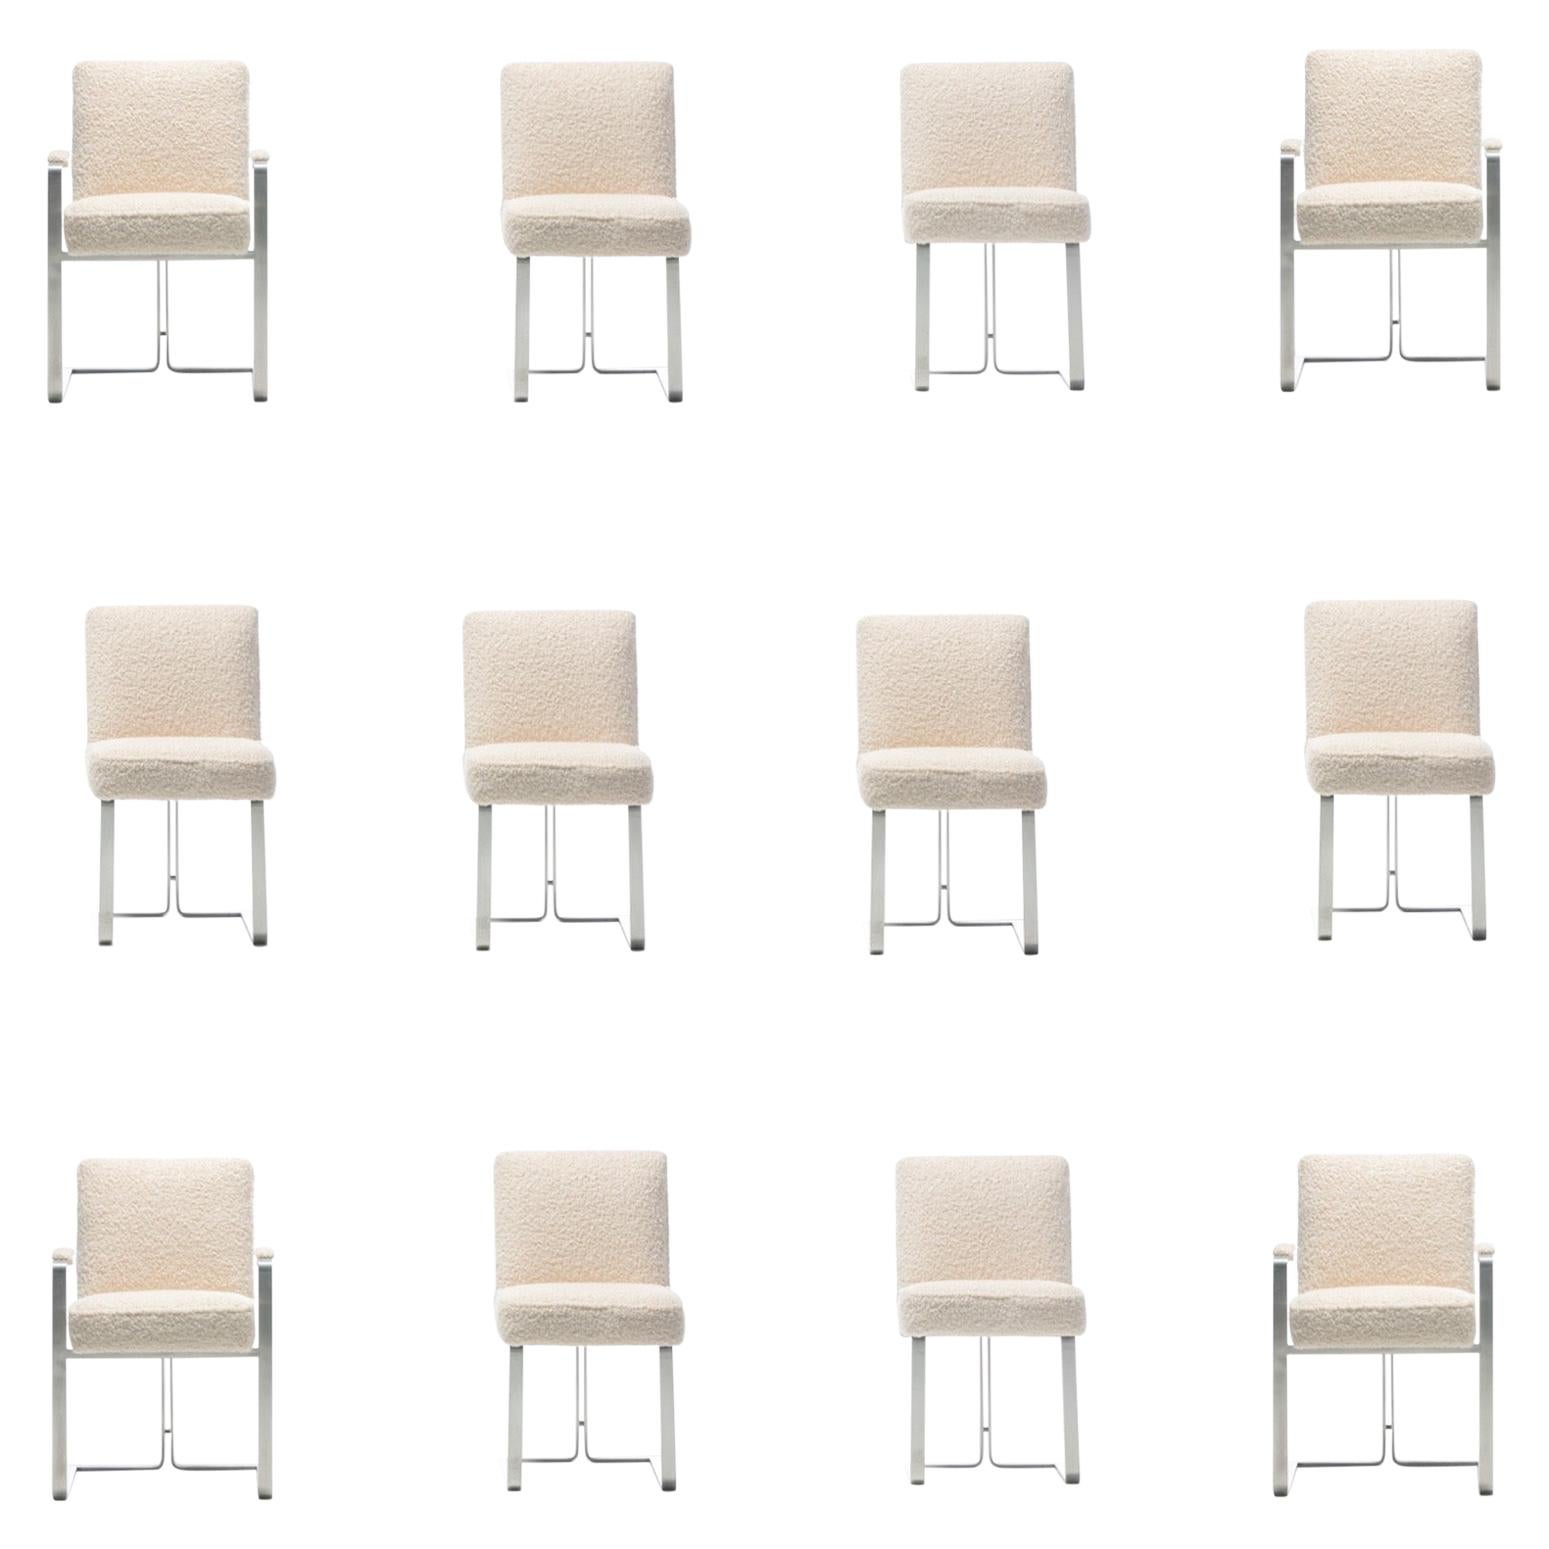 Set of 12 Vladimir Kagan for Kagan-Dreyfuss Steel Dining Chairs in Ivory Bouclé